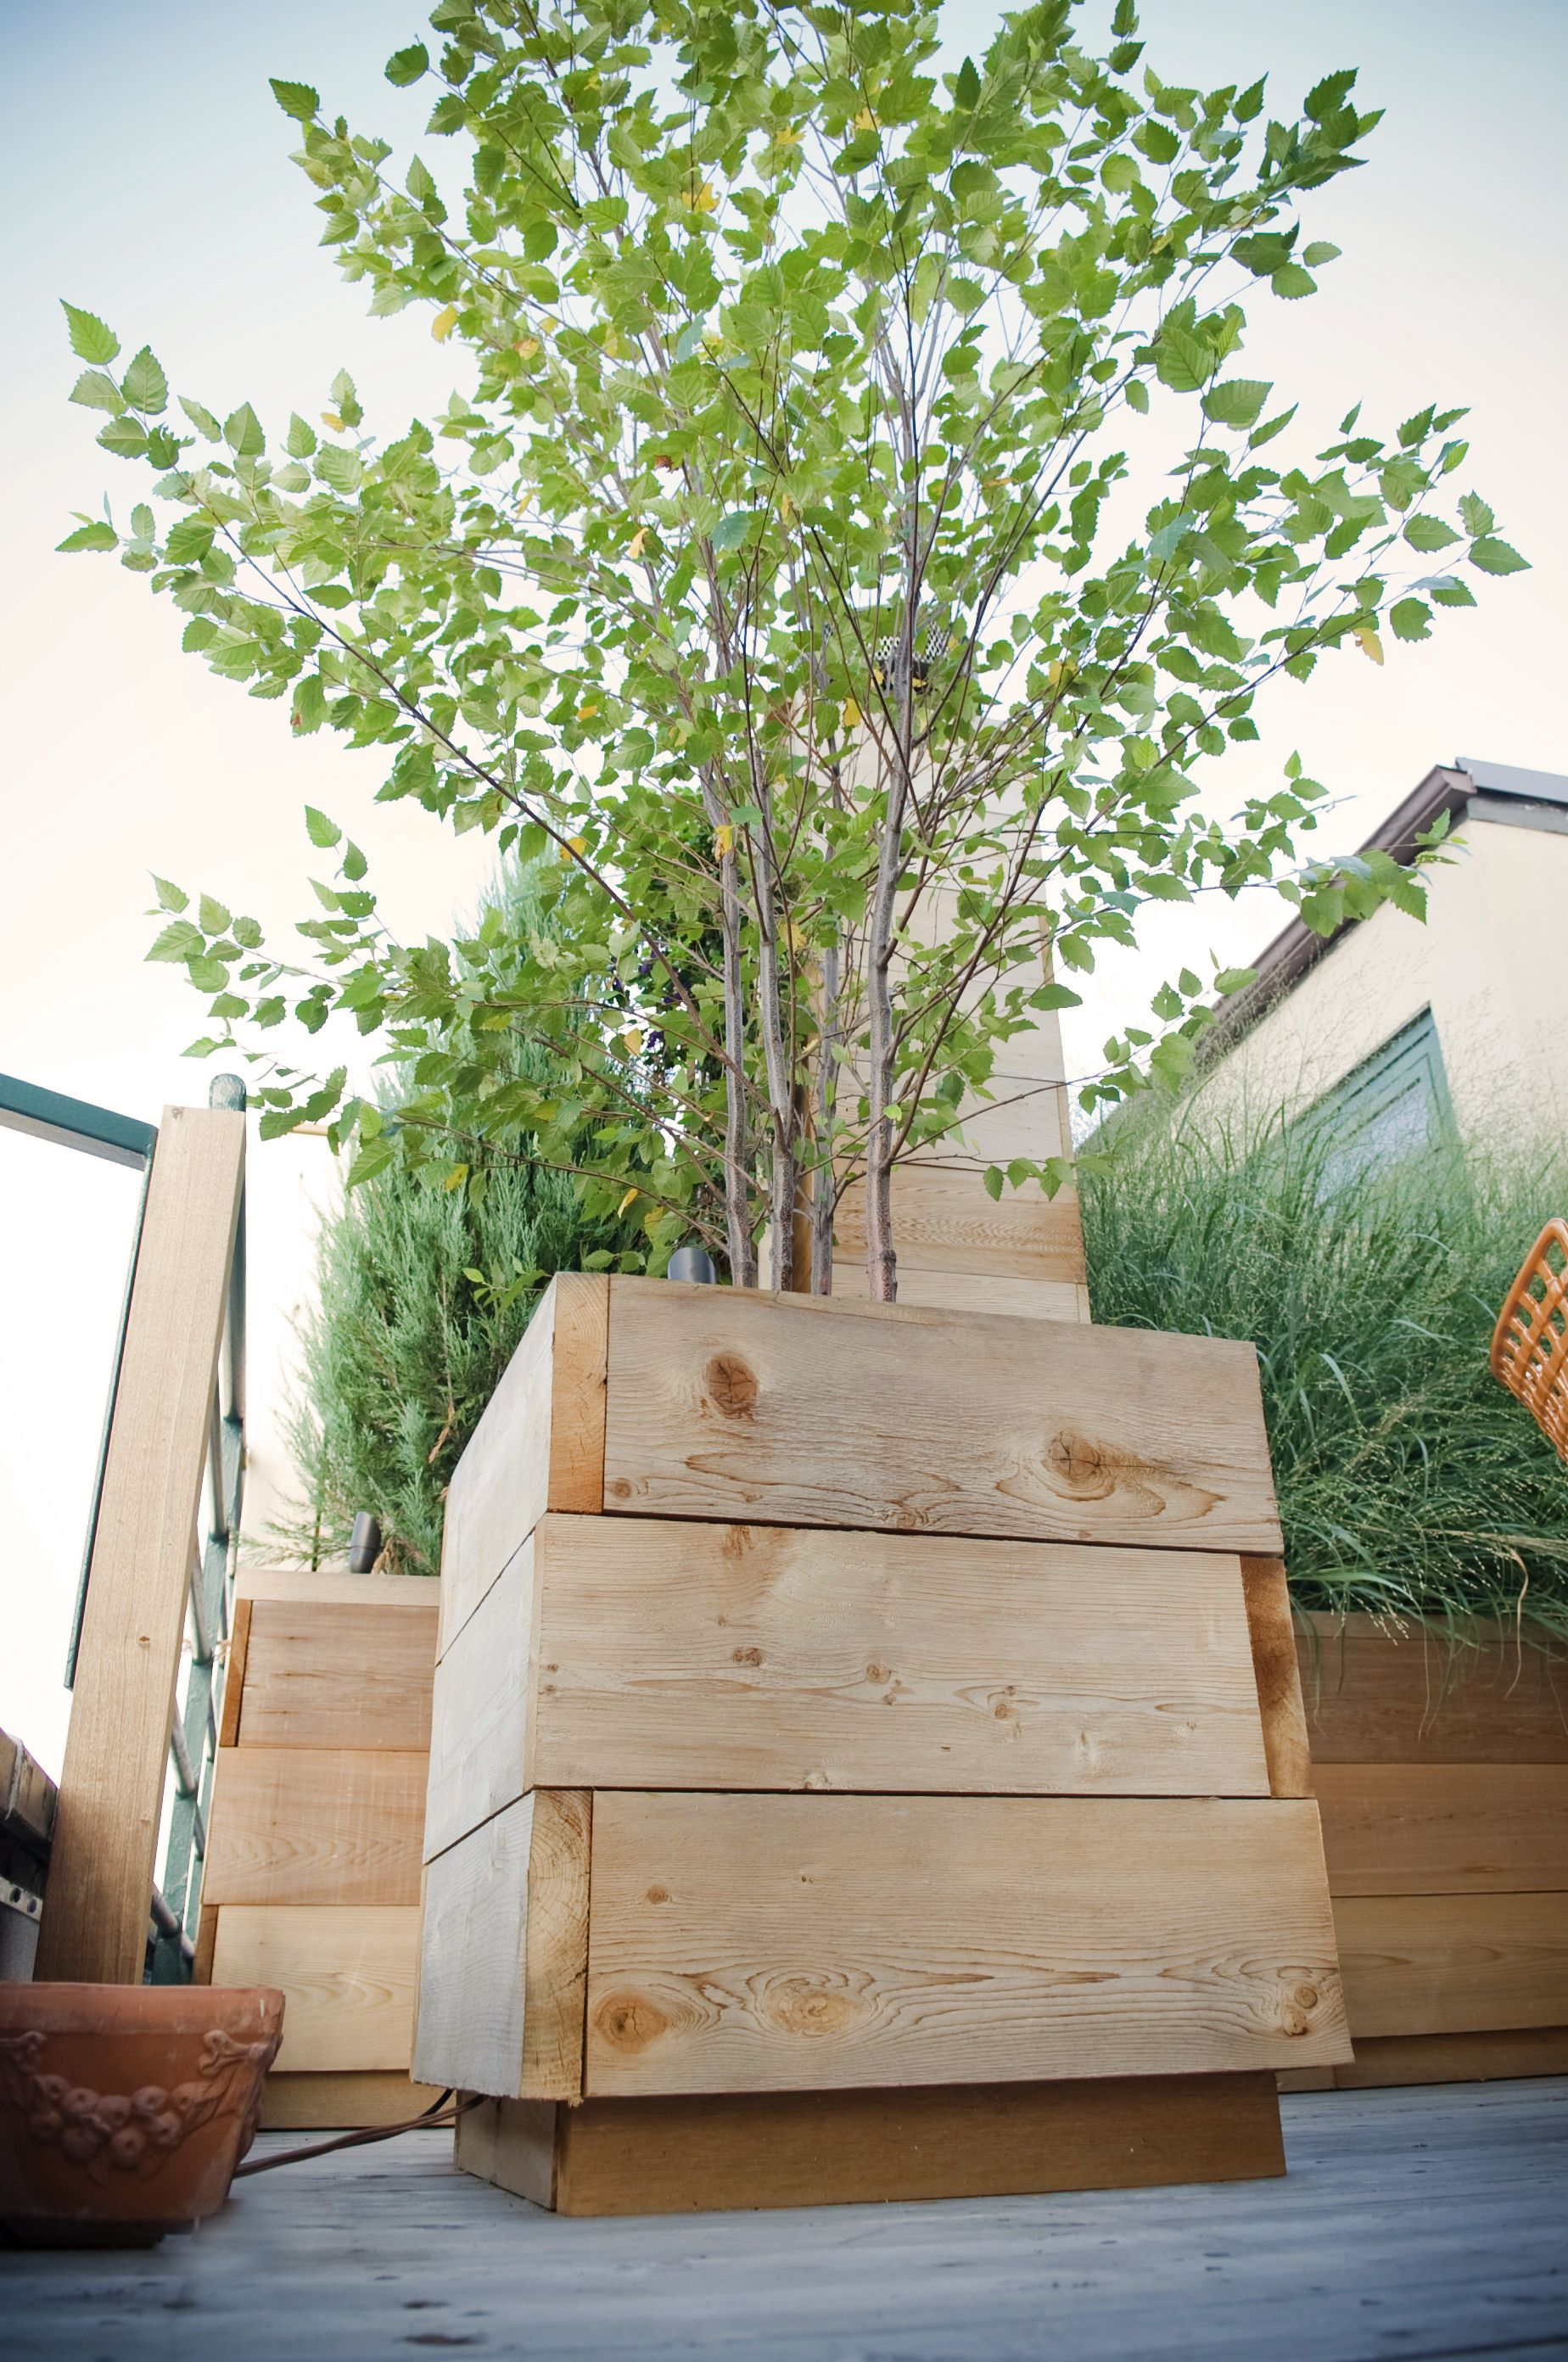 Trees in Planter Boxes